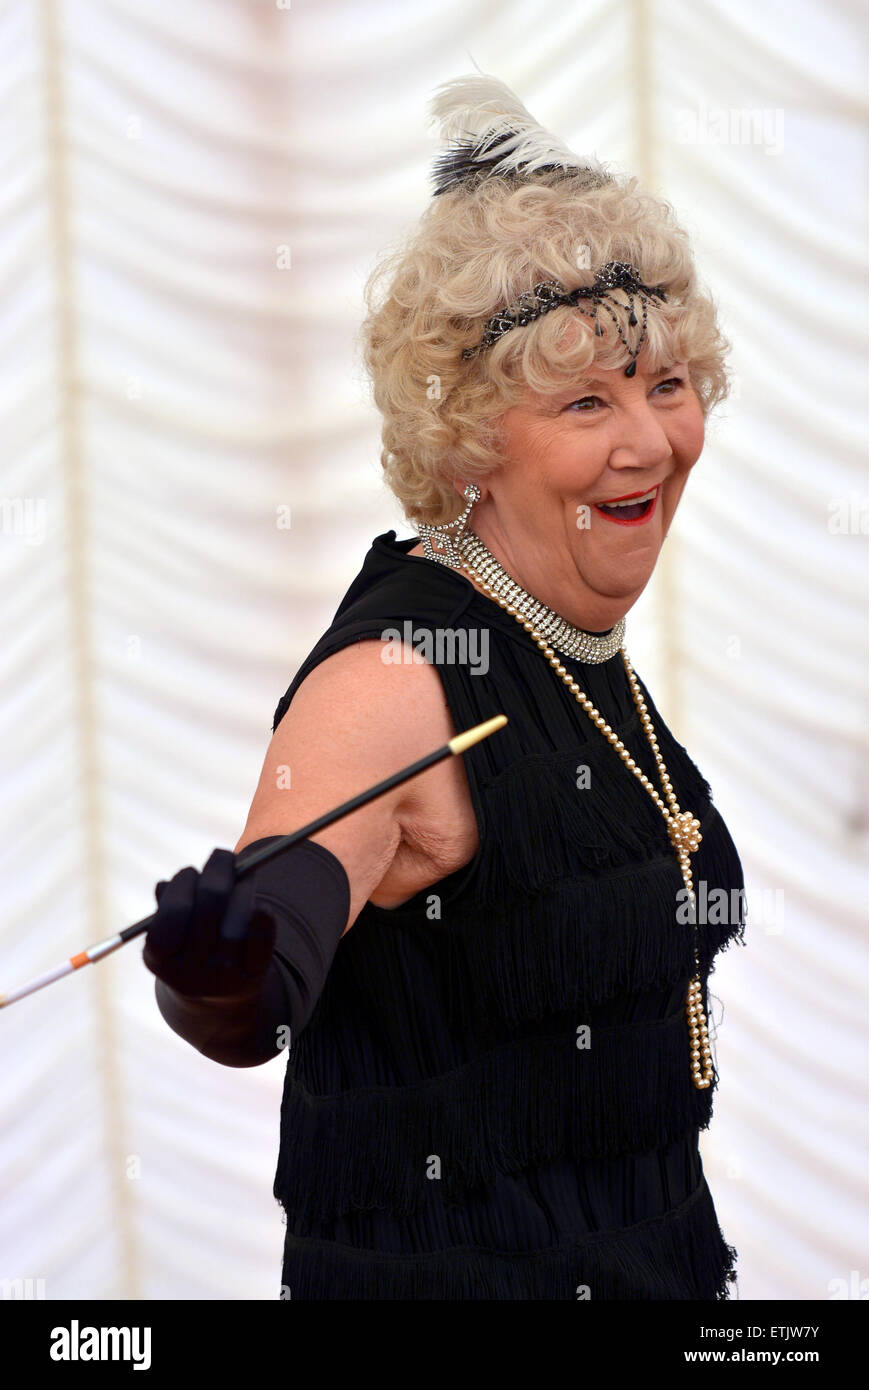 Old woman dancing to the Charleston holding her cigarette and holder - Stock Image